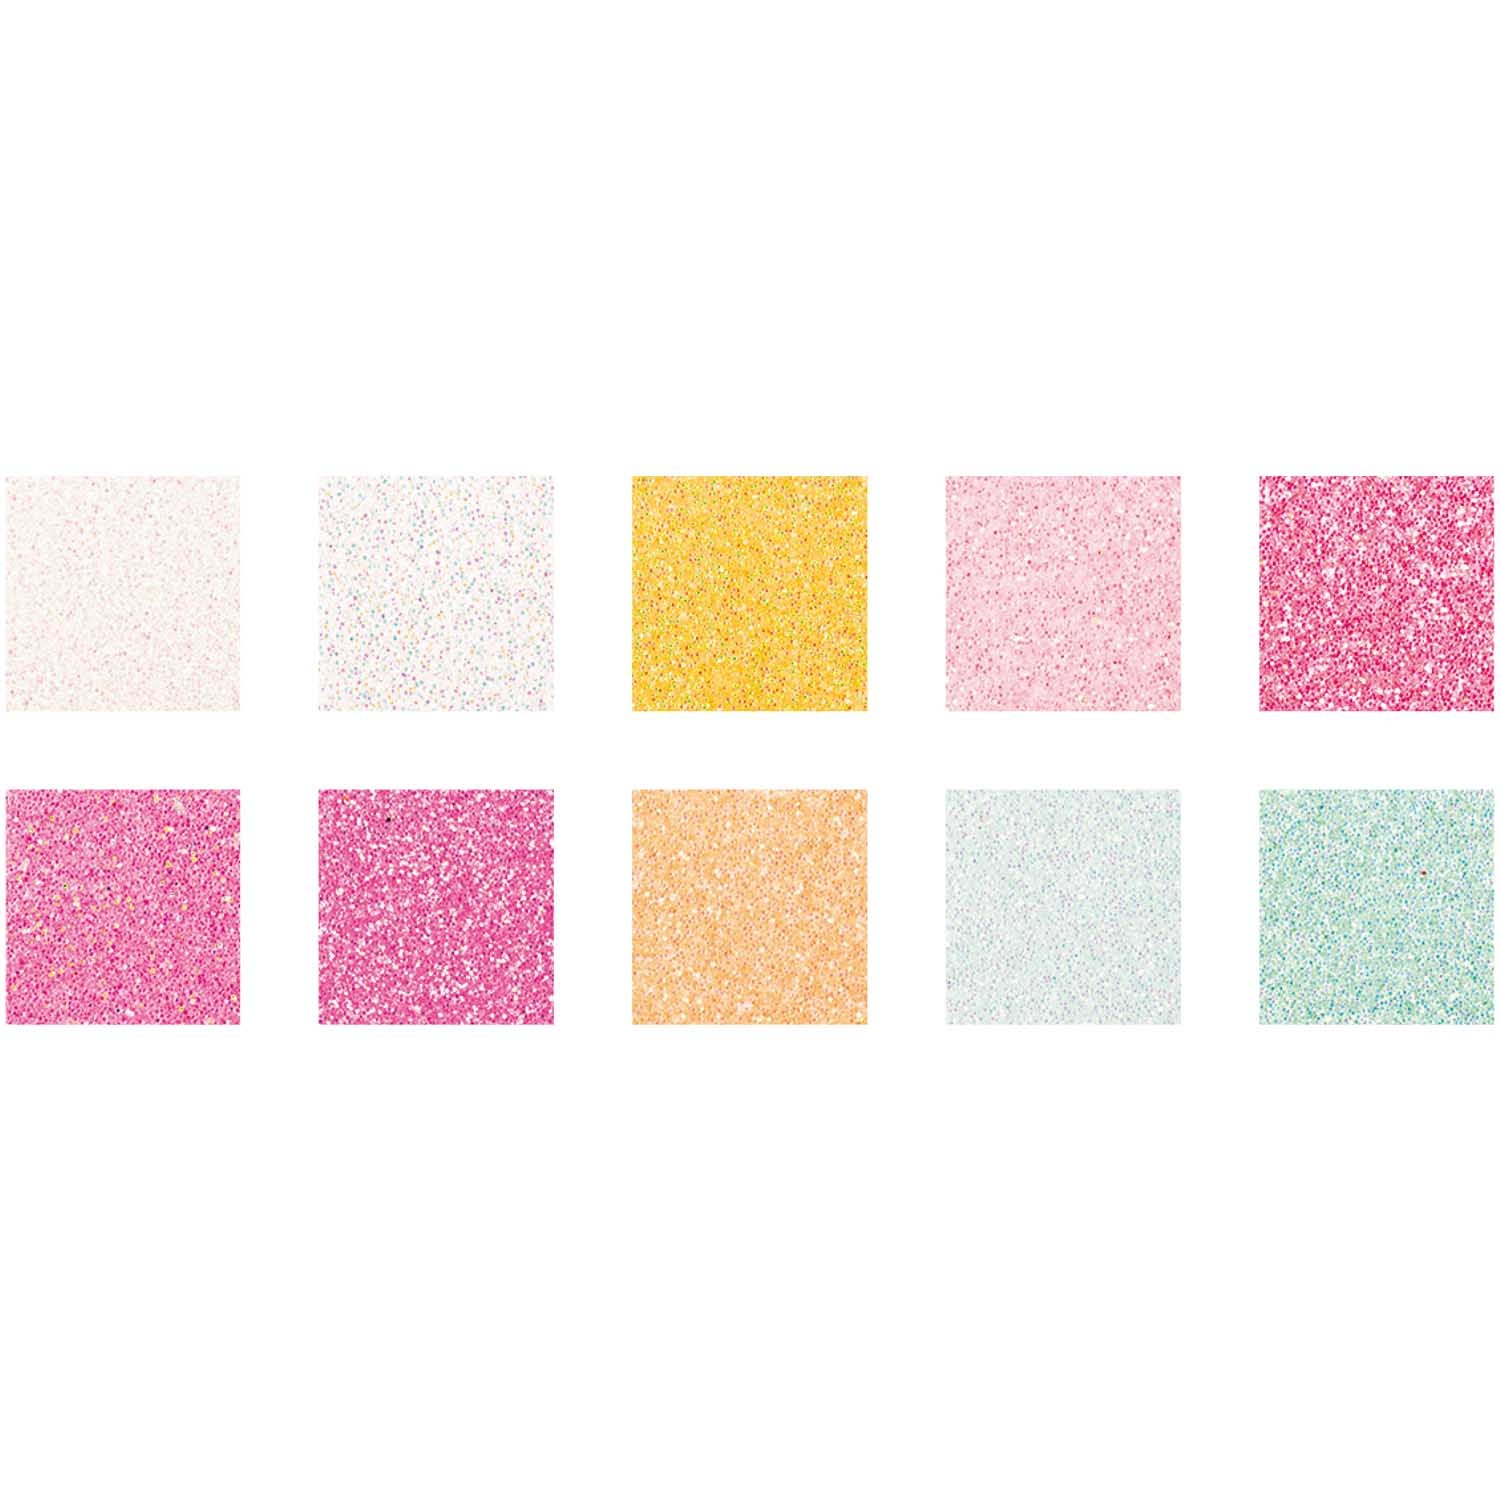 Rico NAY GLITTER PAPER PAD, CANDY MIX 10 SHEETS, 210X295 MM, 180 G